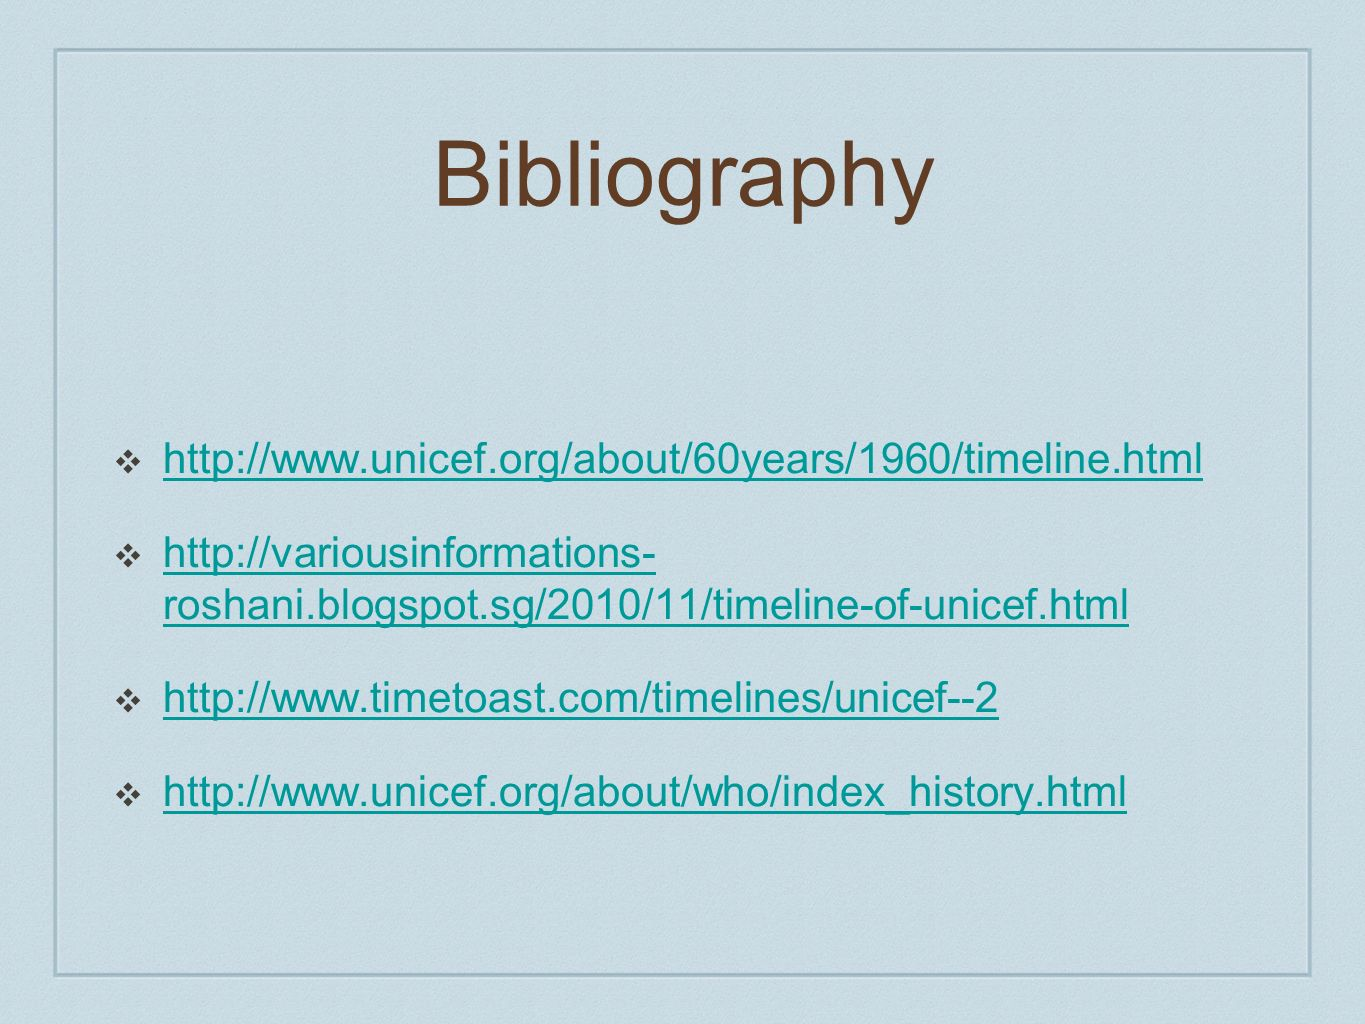 Bibliography http://www.unicef.org/about/60years/1960/timeline.html